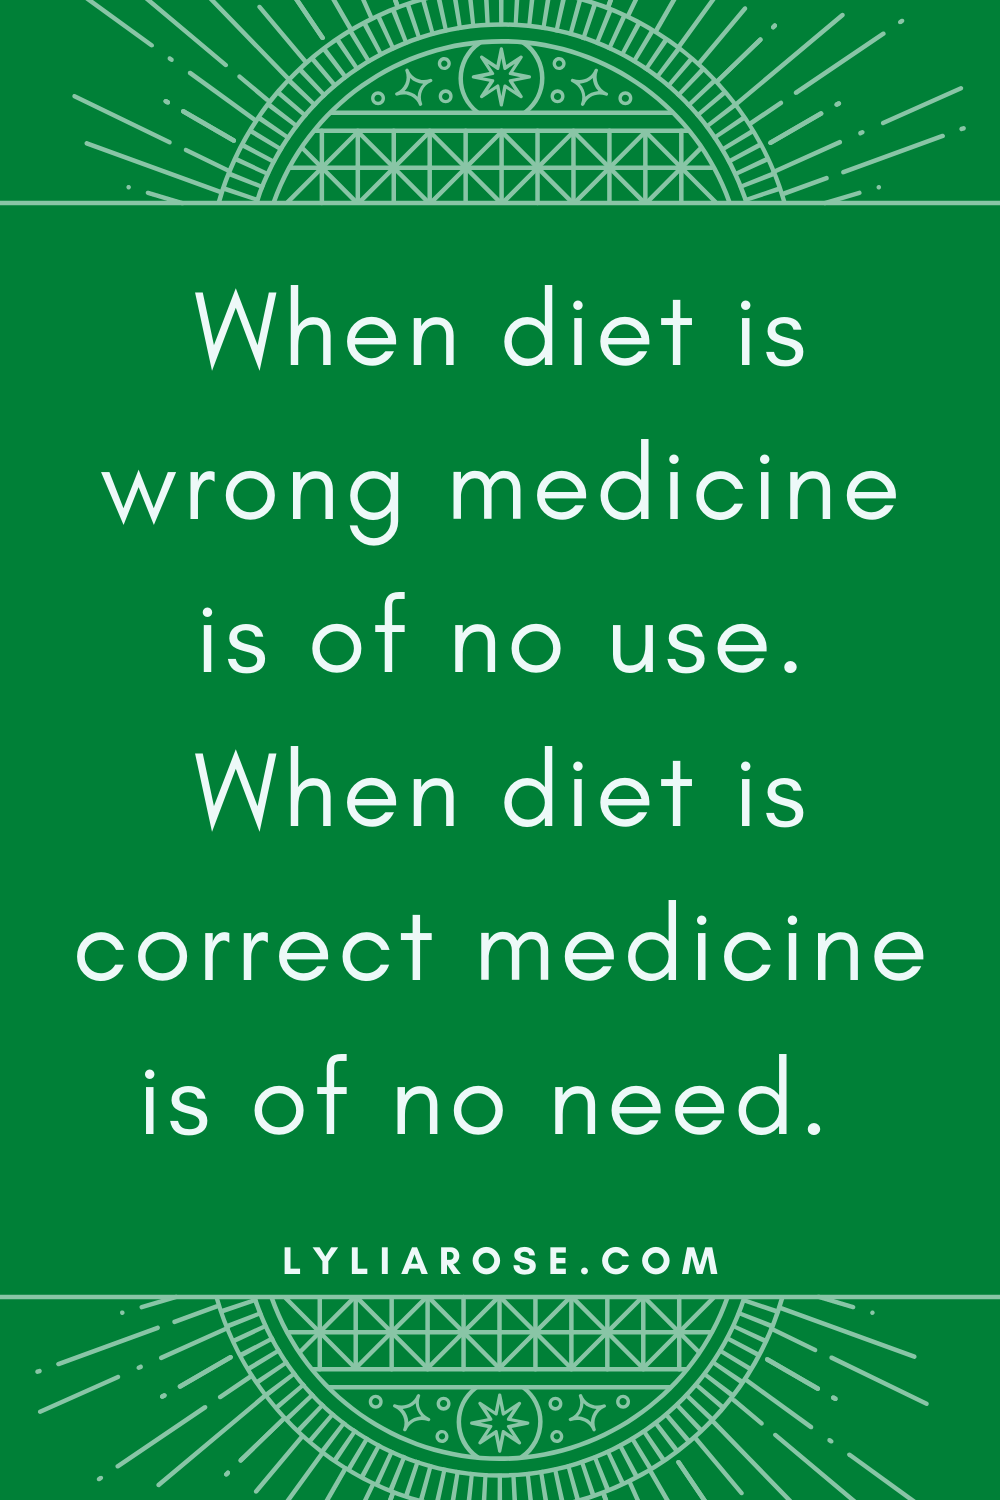 When diet is wrong medicine is of no use. When diet is correct medicine is